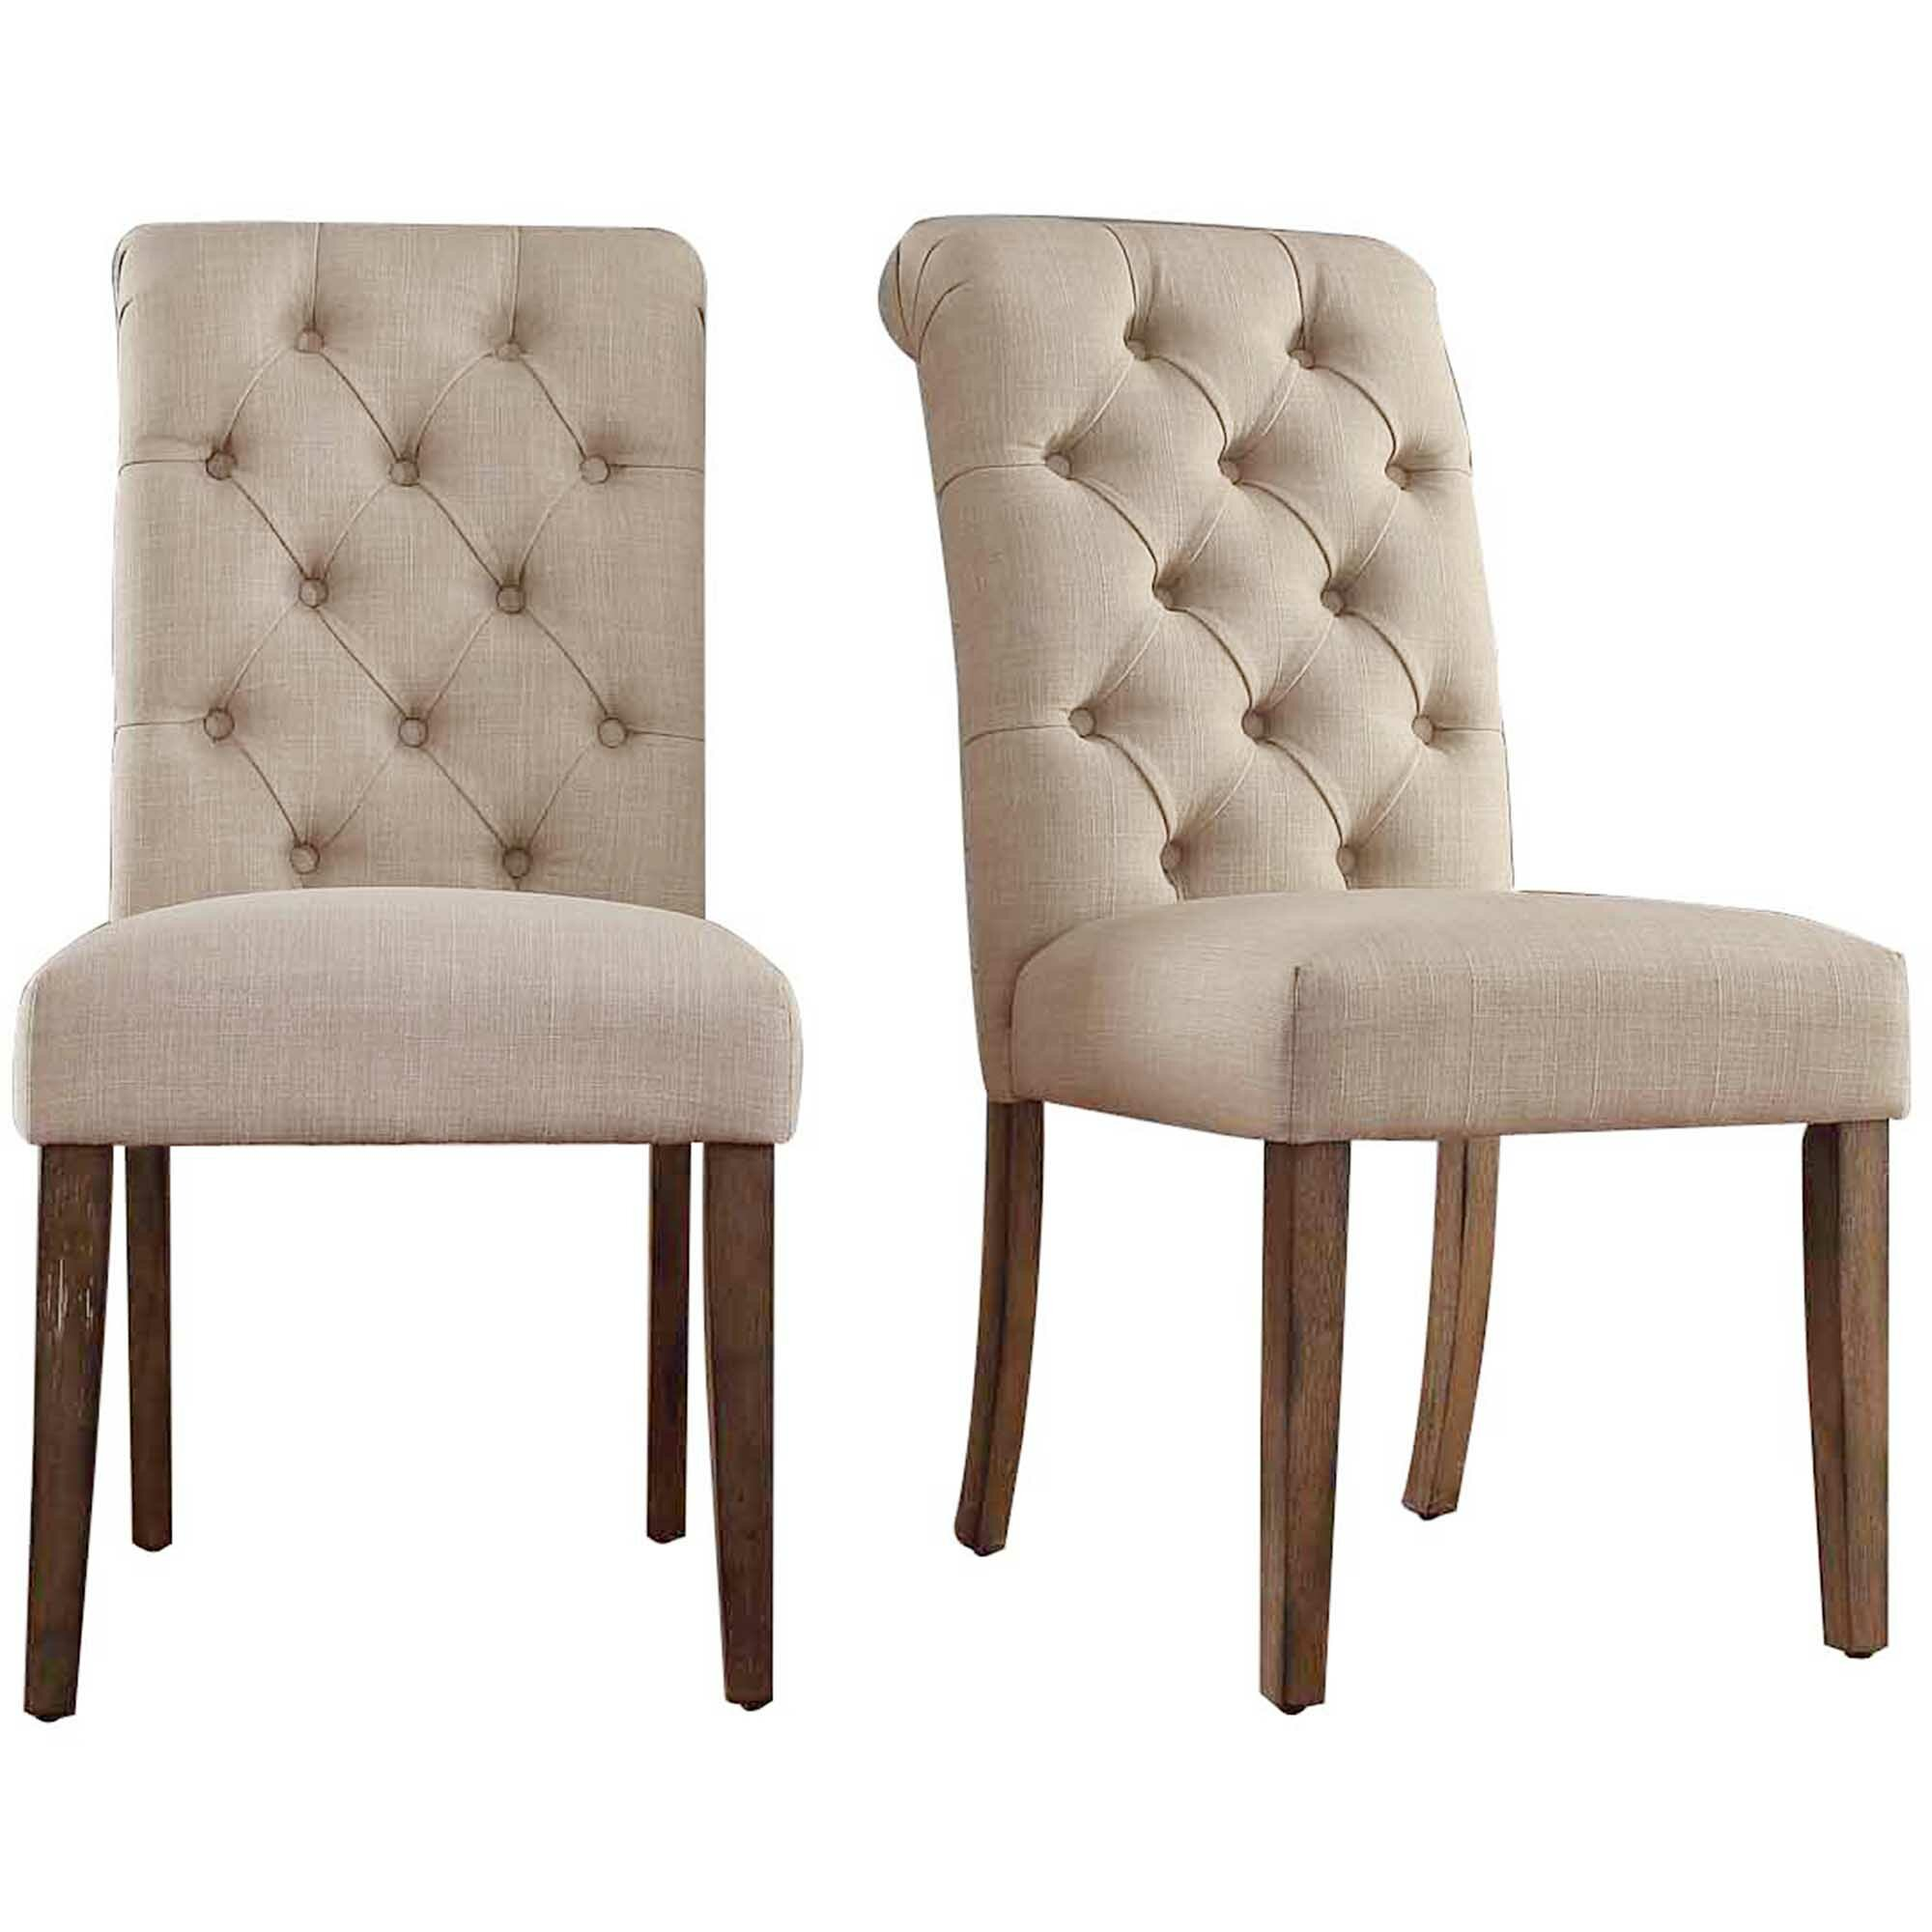 Pompon Tufted Side Chair LARK2736 LARK2736 in addition 23150021 likewise Lego Star Wars Super Star Destroyer moreover 656 Game Of Thrones T Shirt Trone De Fer furthermore Stock Image Household Items Image26091891. on xl game chair